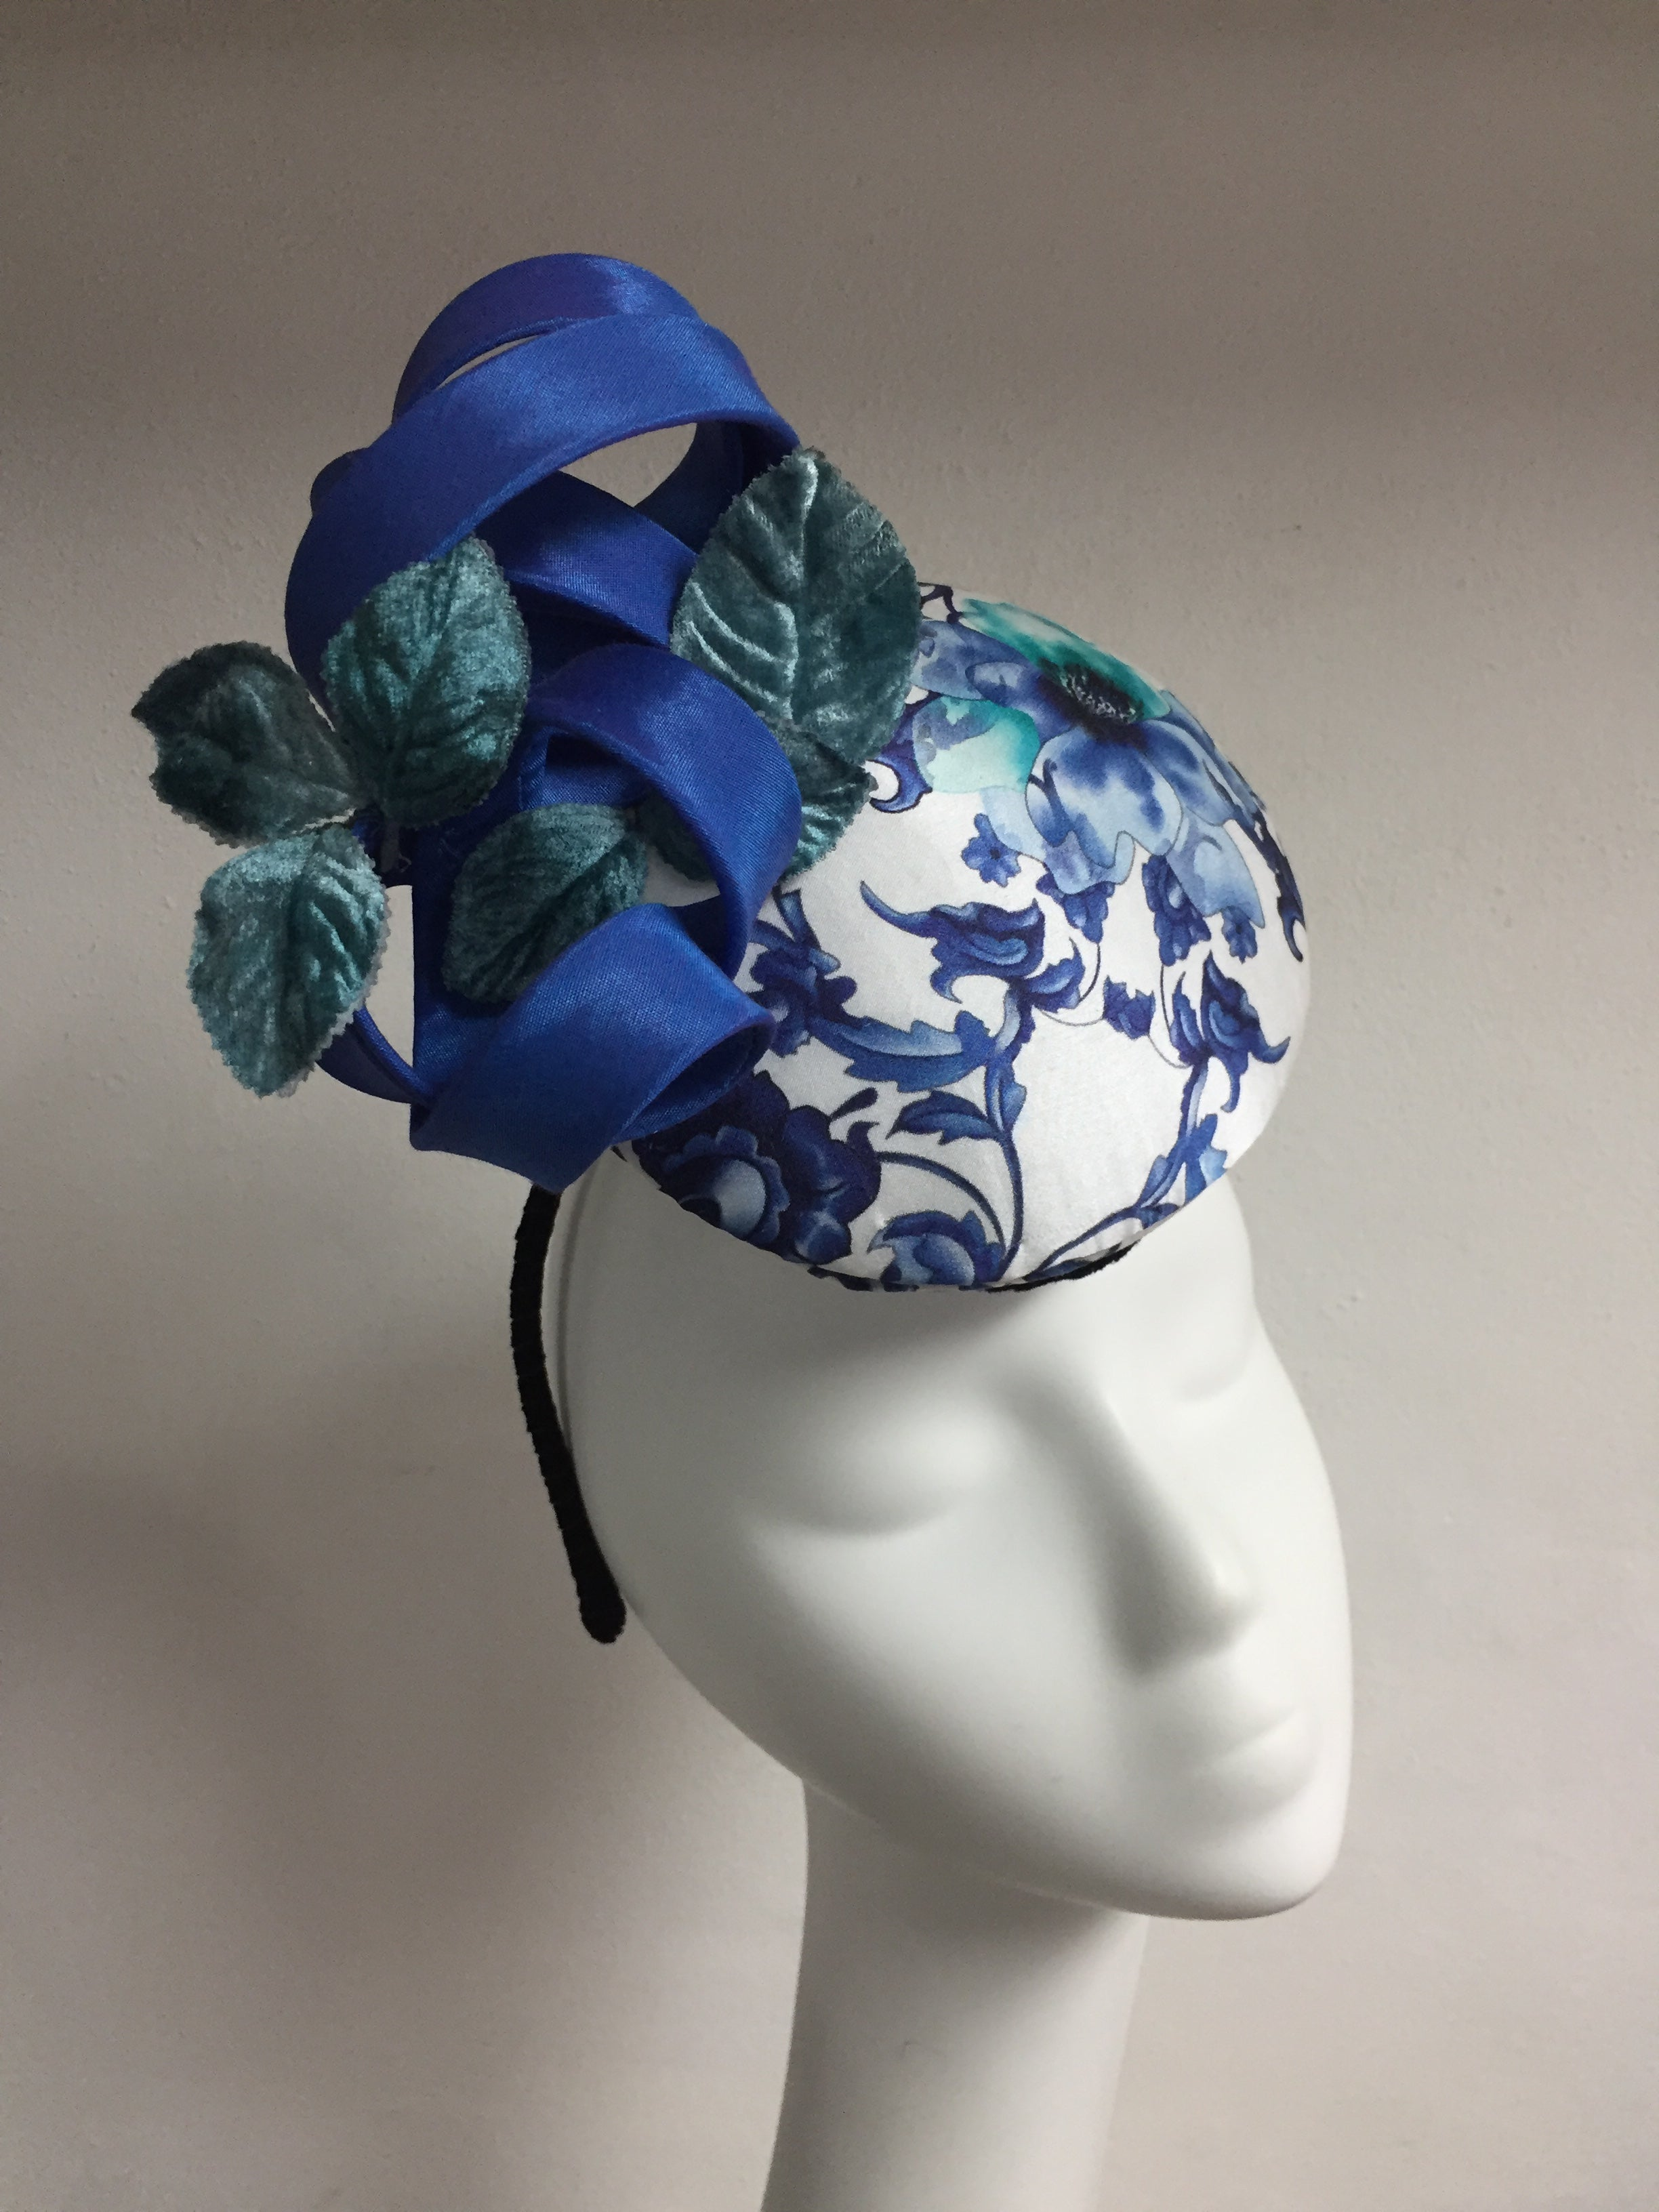 Shanghai - Blue, white and mint green Percher style hat - NOELEEN MILLINERY HONG KONG